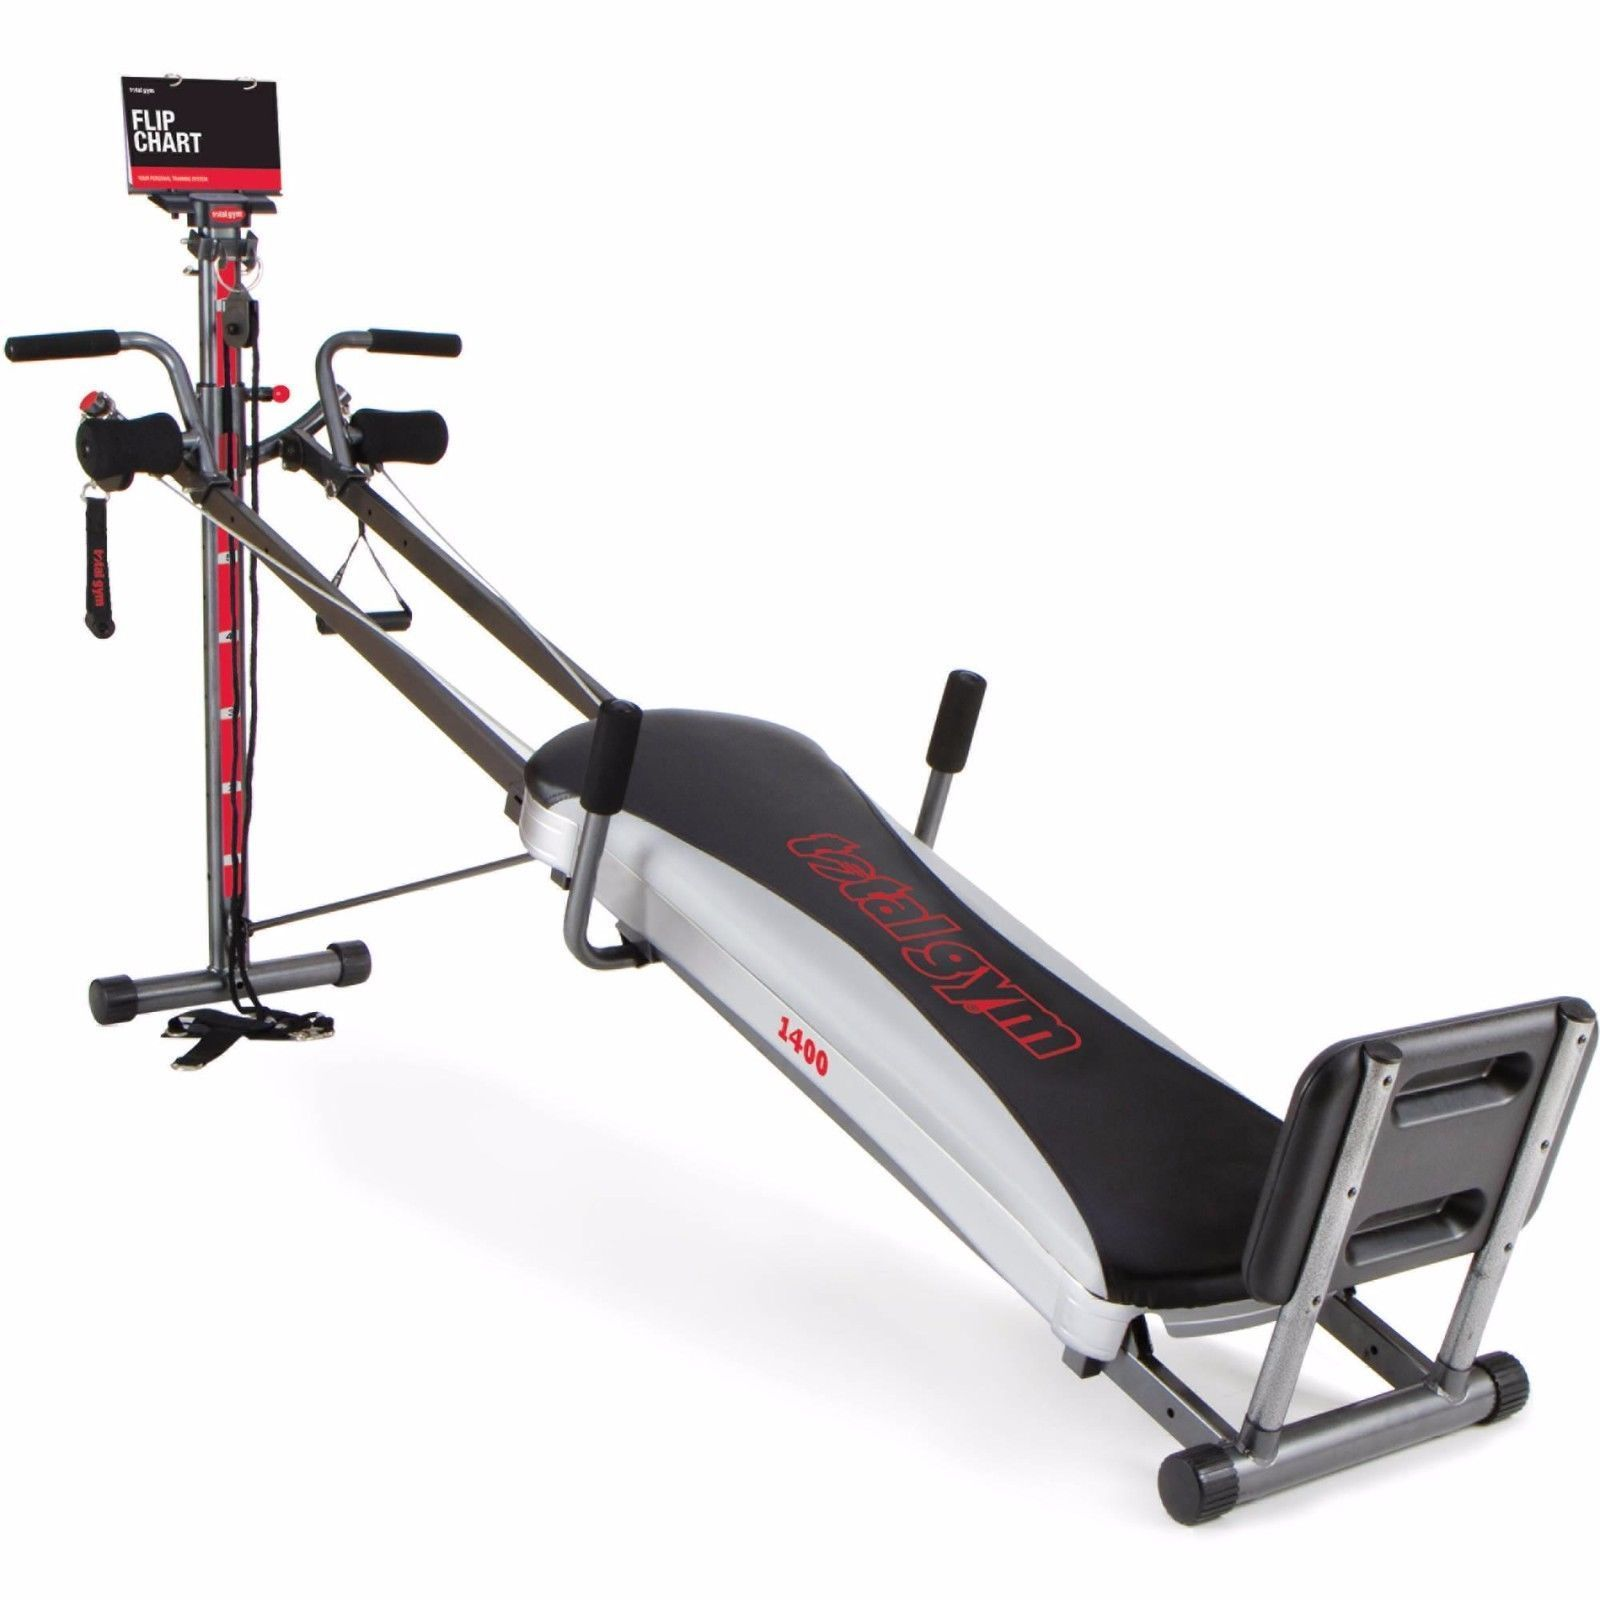 Total Gym 1400 Deluxe Home Exercise Machine